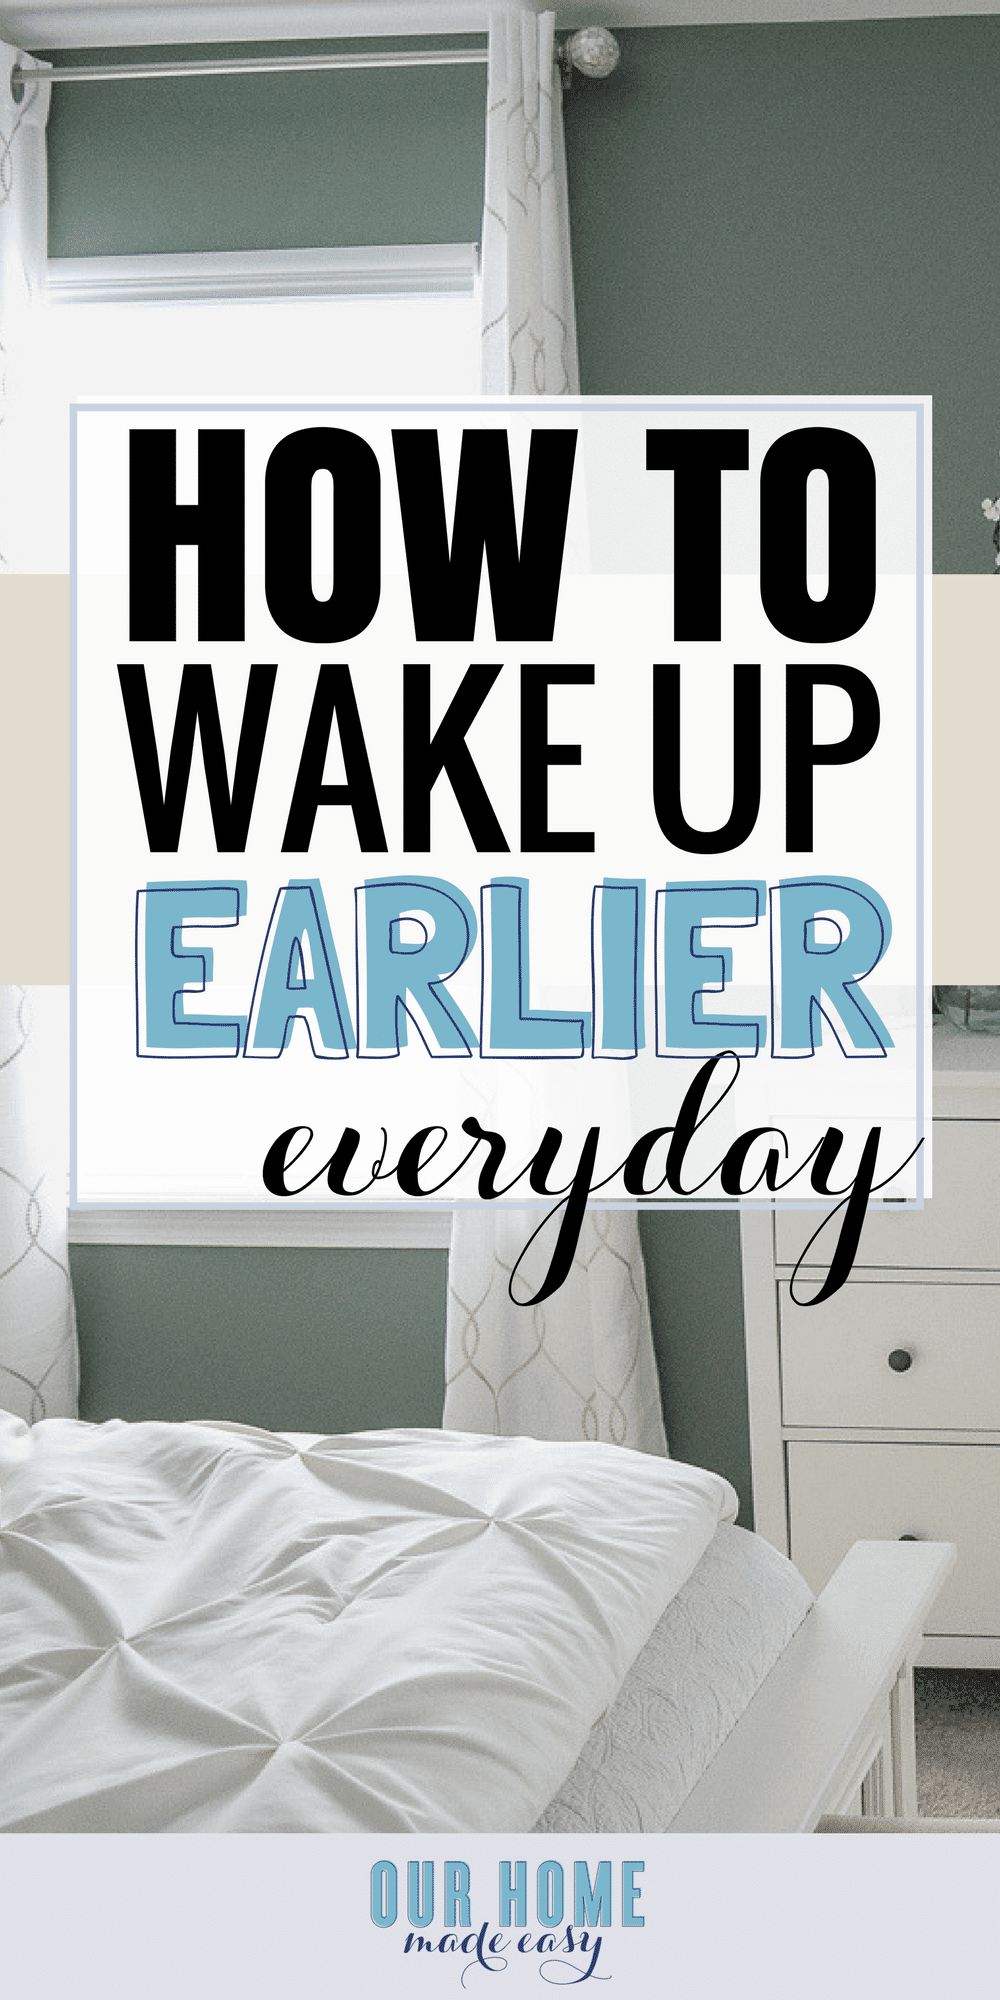 Waking up earlier every day doesn't have to be a struggle! Find your motivation and use one of the tips above to make every day better with an early start!